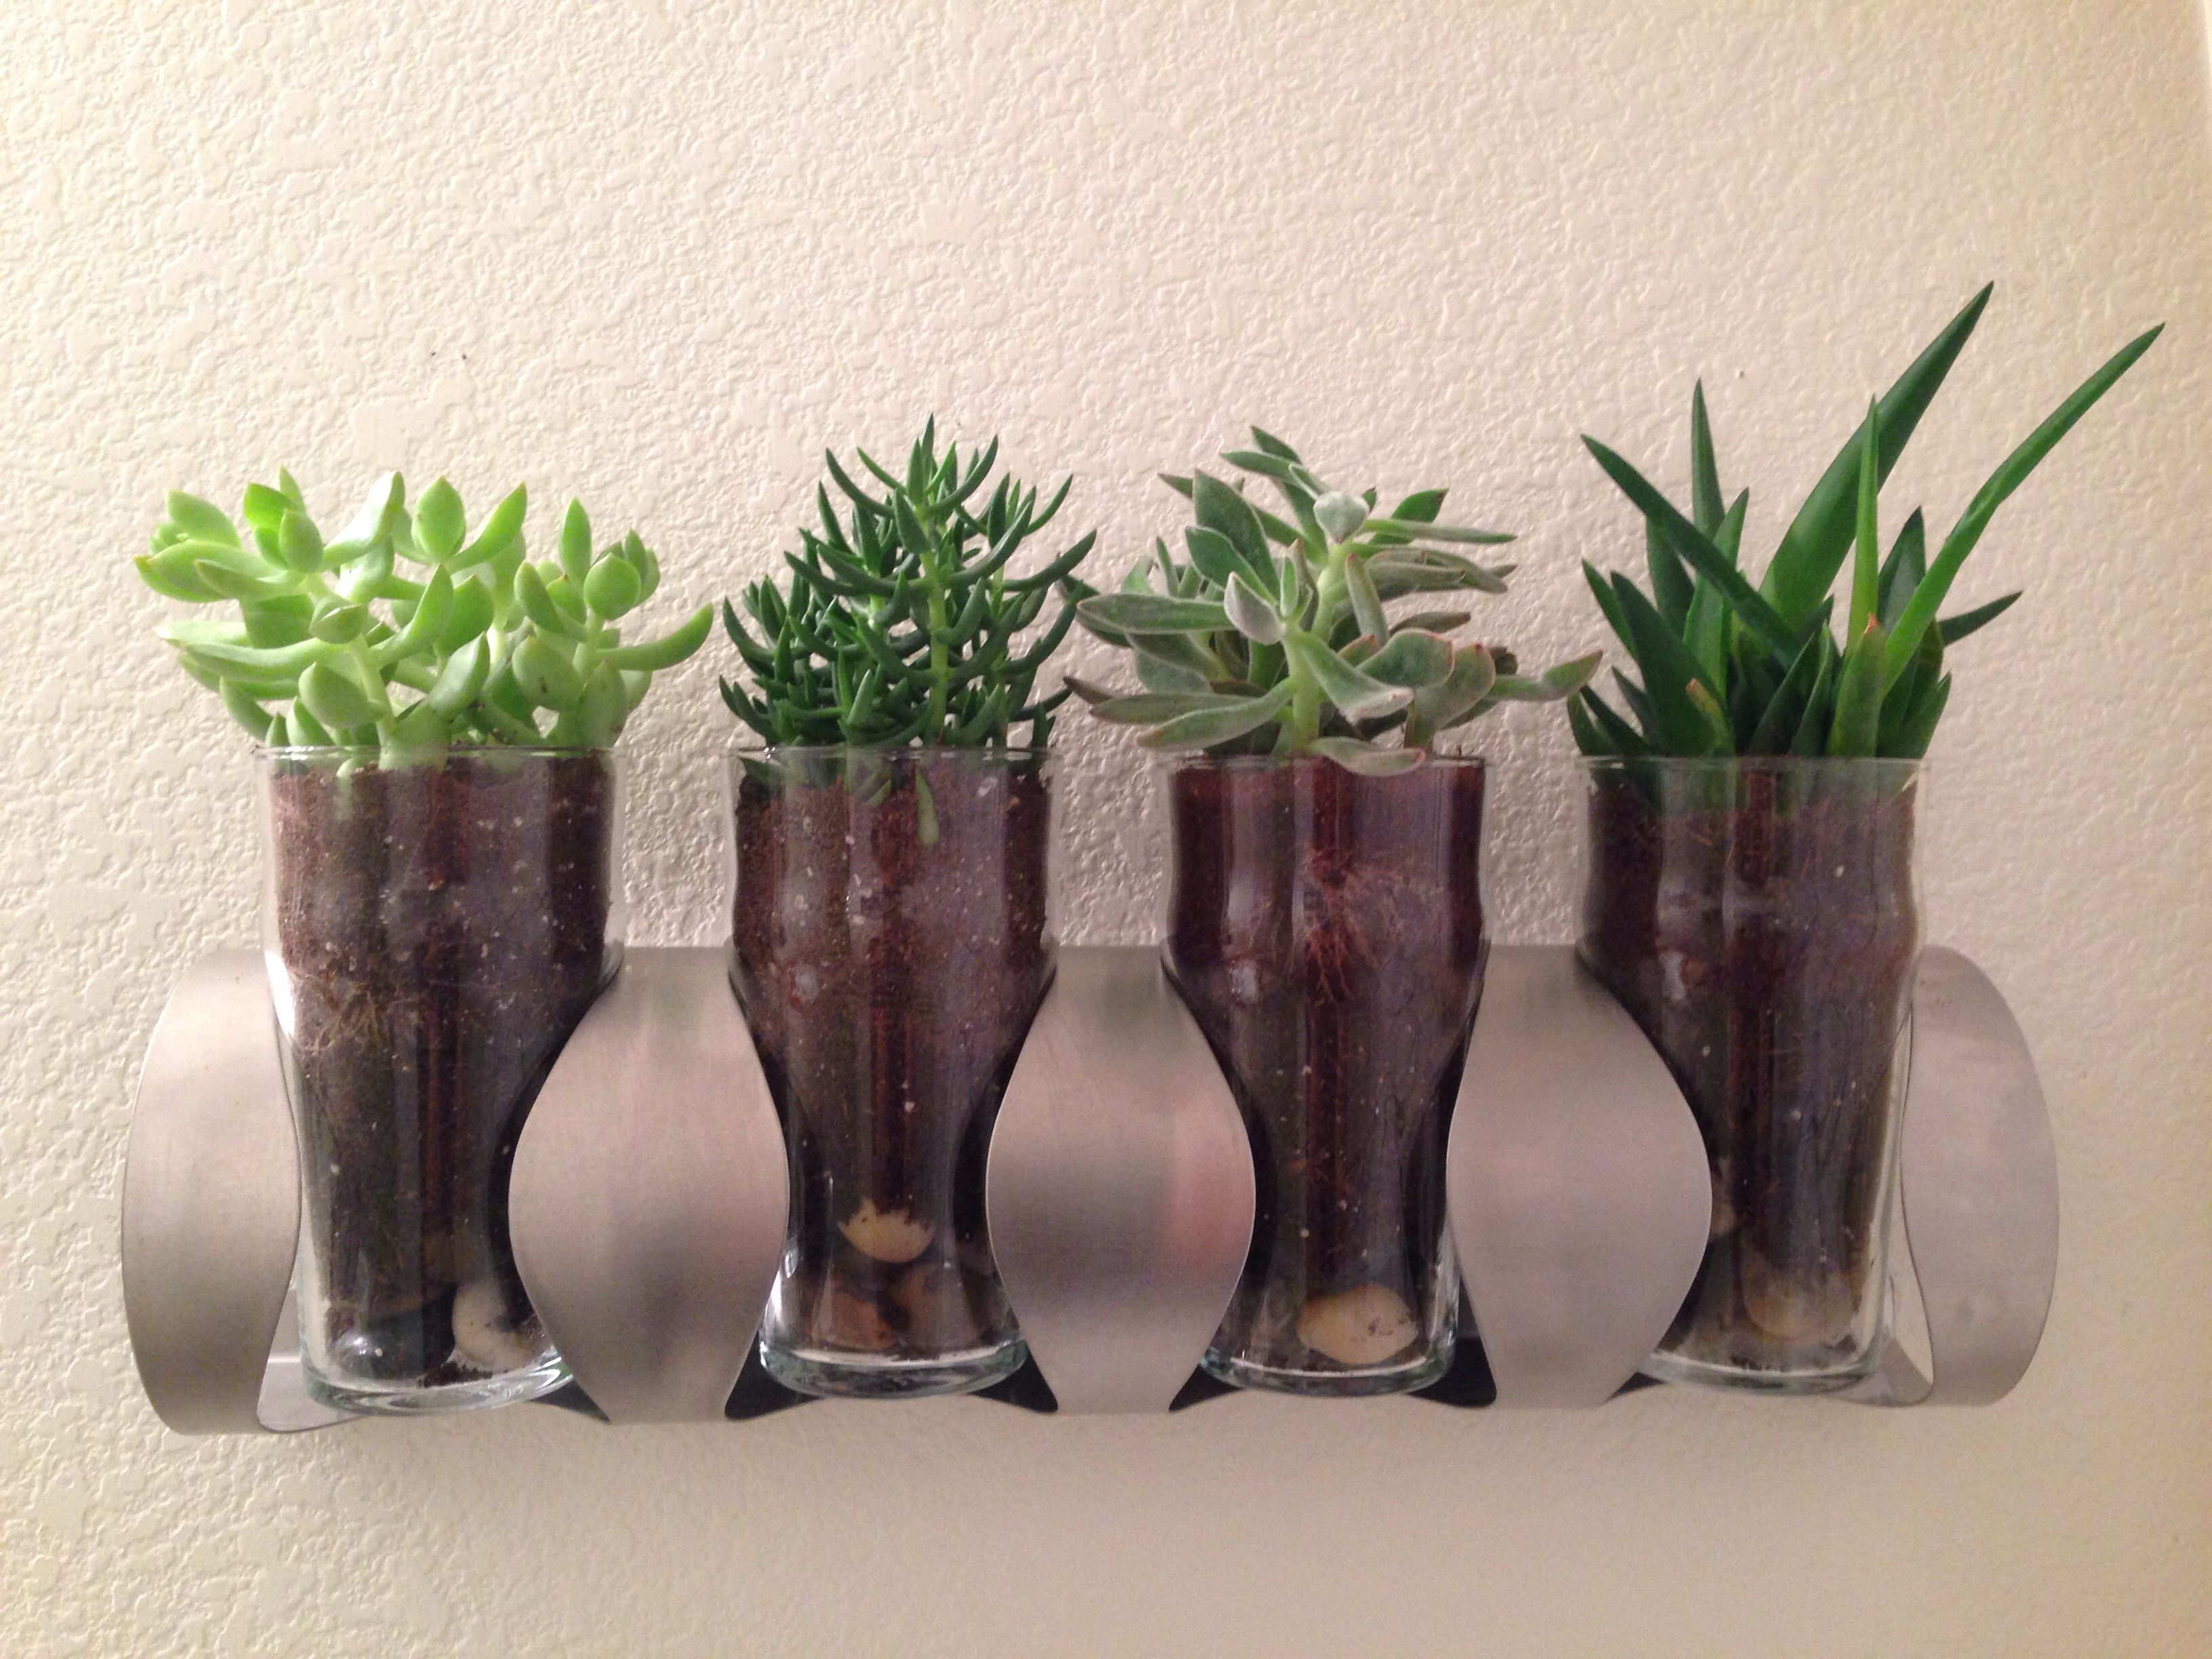 Discovered the VURM wine rack from IKEA doesn't accommodate wide bottles, so repurposed it as a planter by hanging it horizontally with pint glasses. Boom. Tiny little succulent garden!